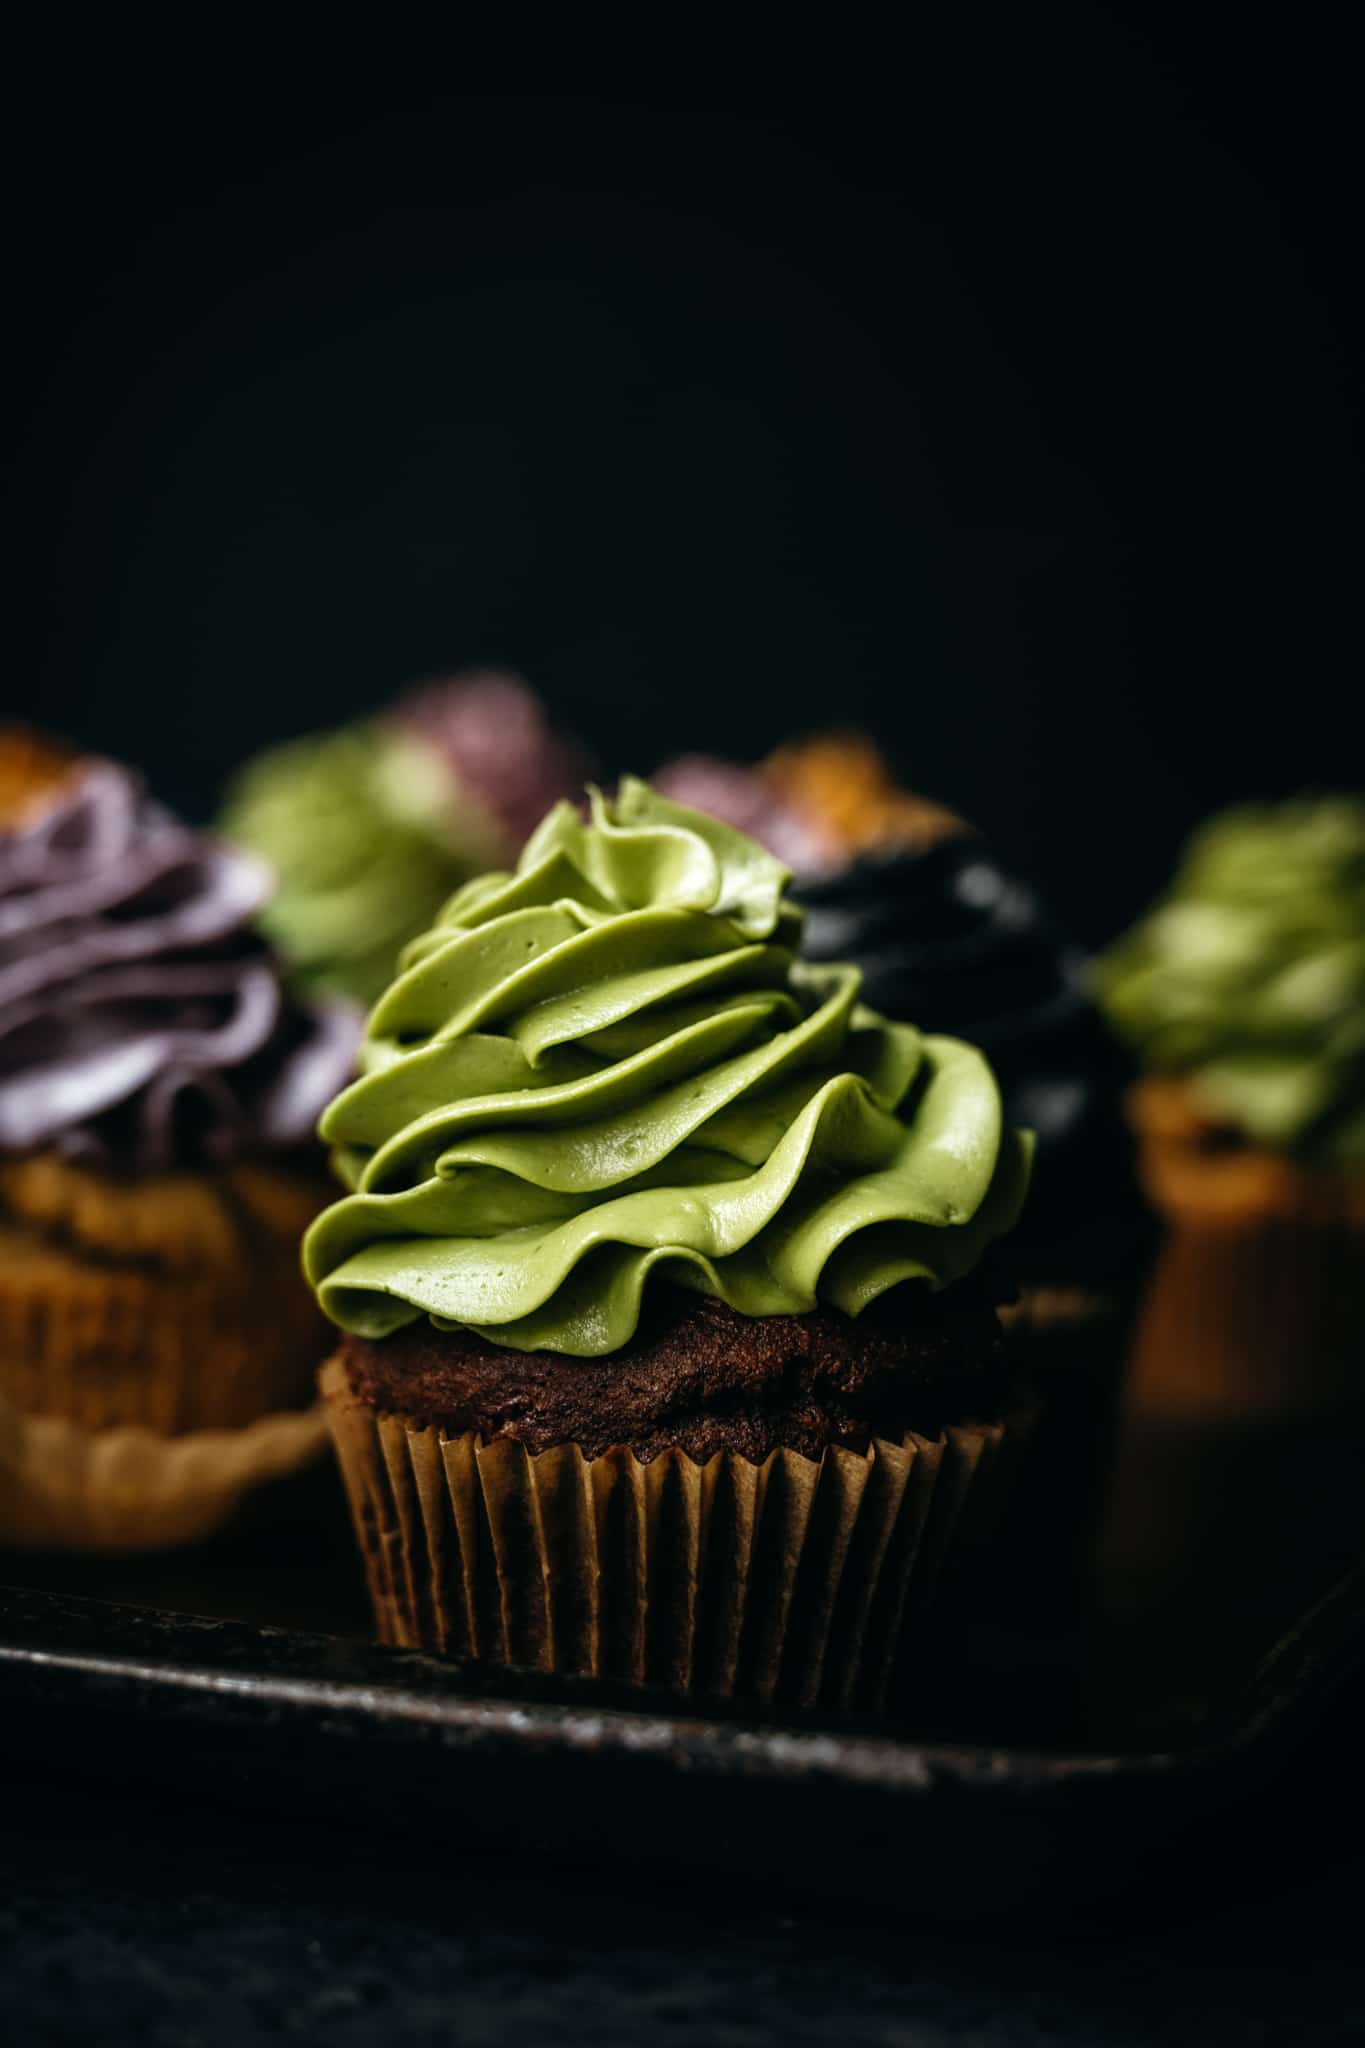 closeup side view of vegan chocolate cupcake with green frosting colored with matcha